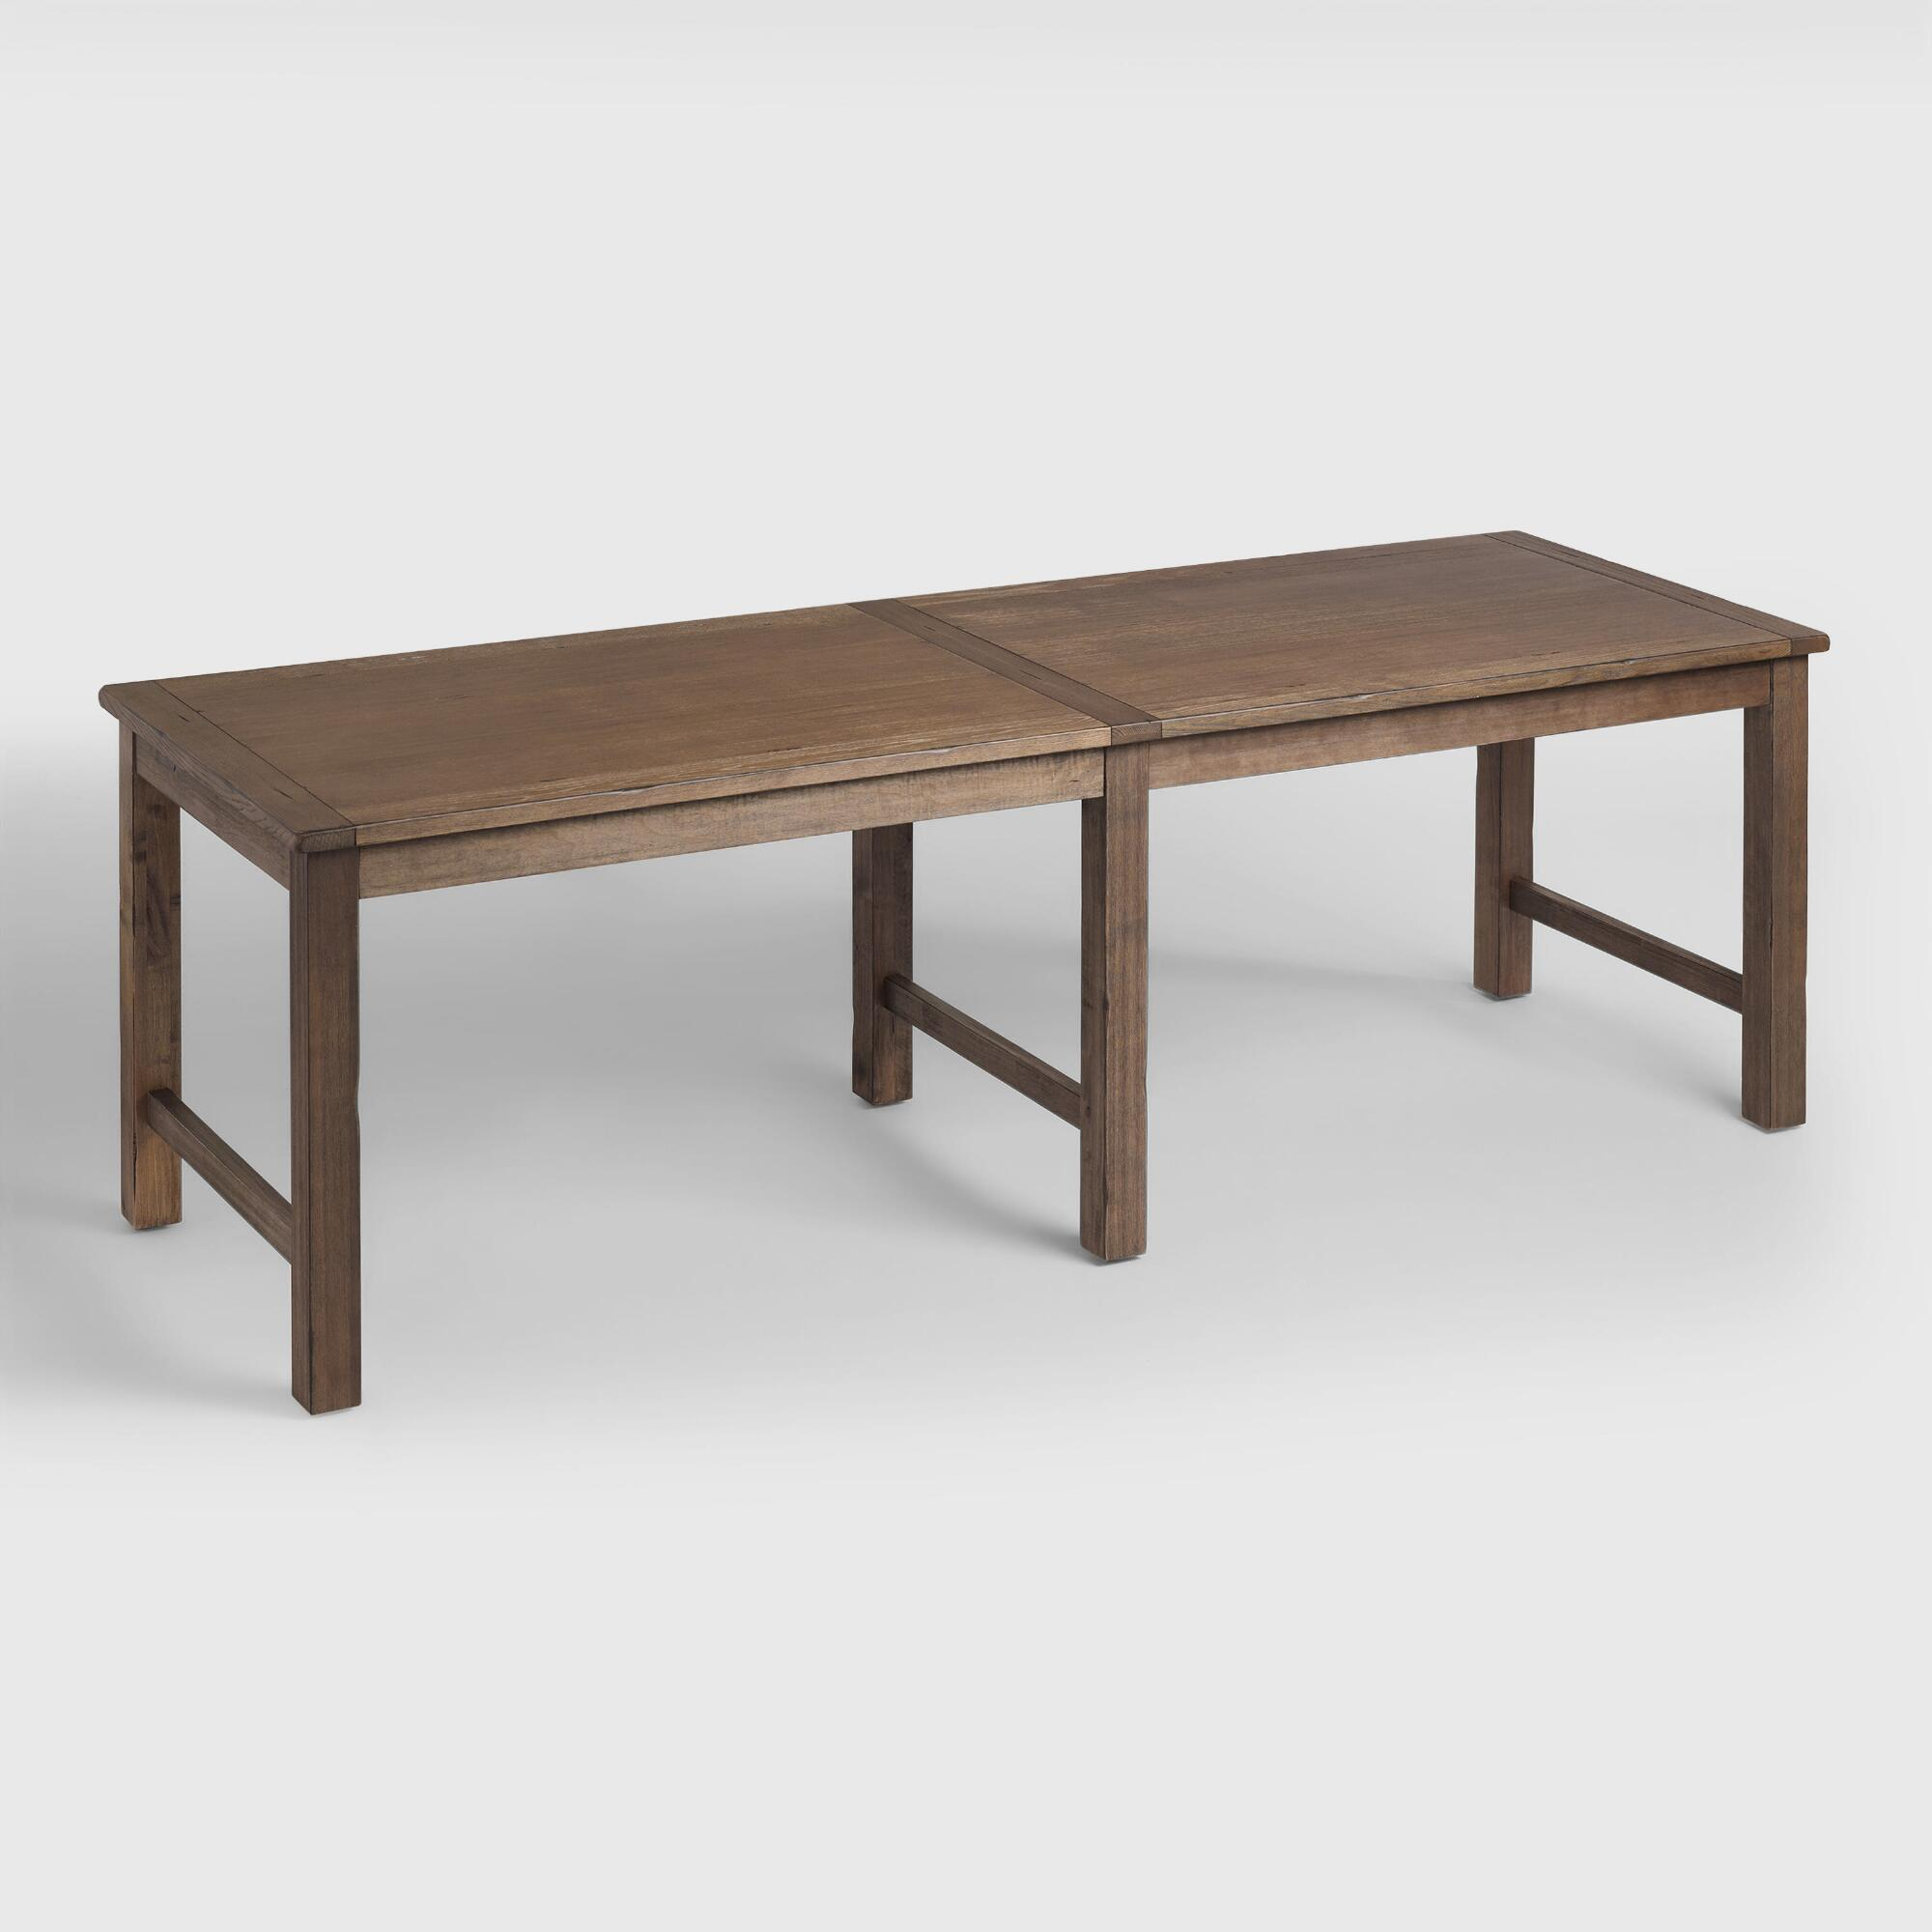 Distressed brown wood gulianna extra long dining table for Long dining table